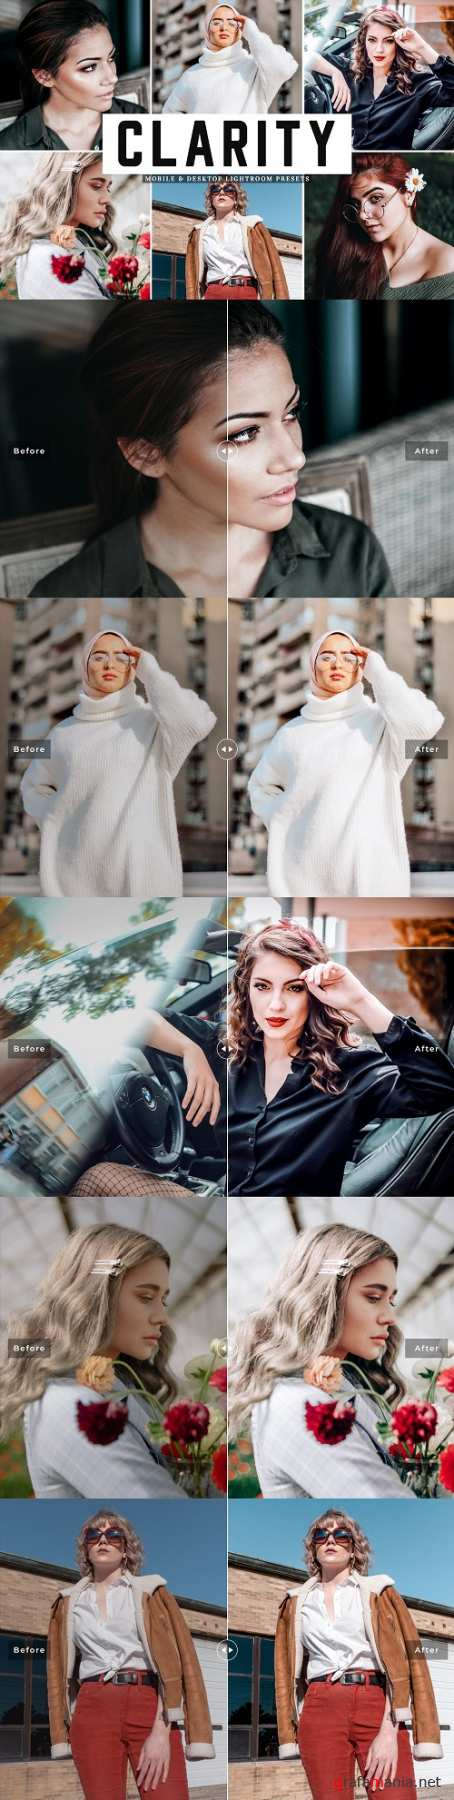 Clarity Lightroom Presets Pack - 4651228 - Mobile & Desktop